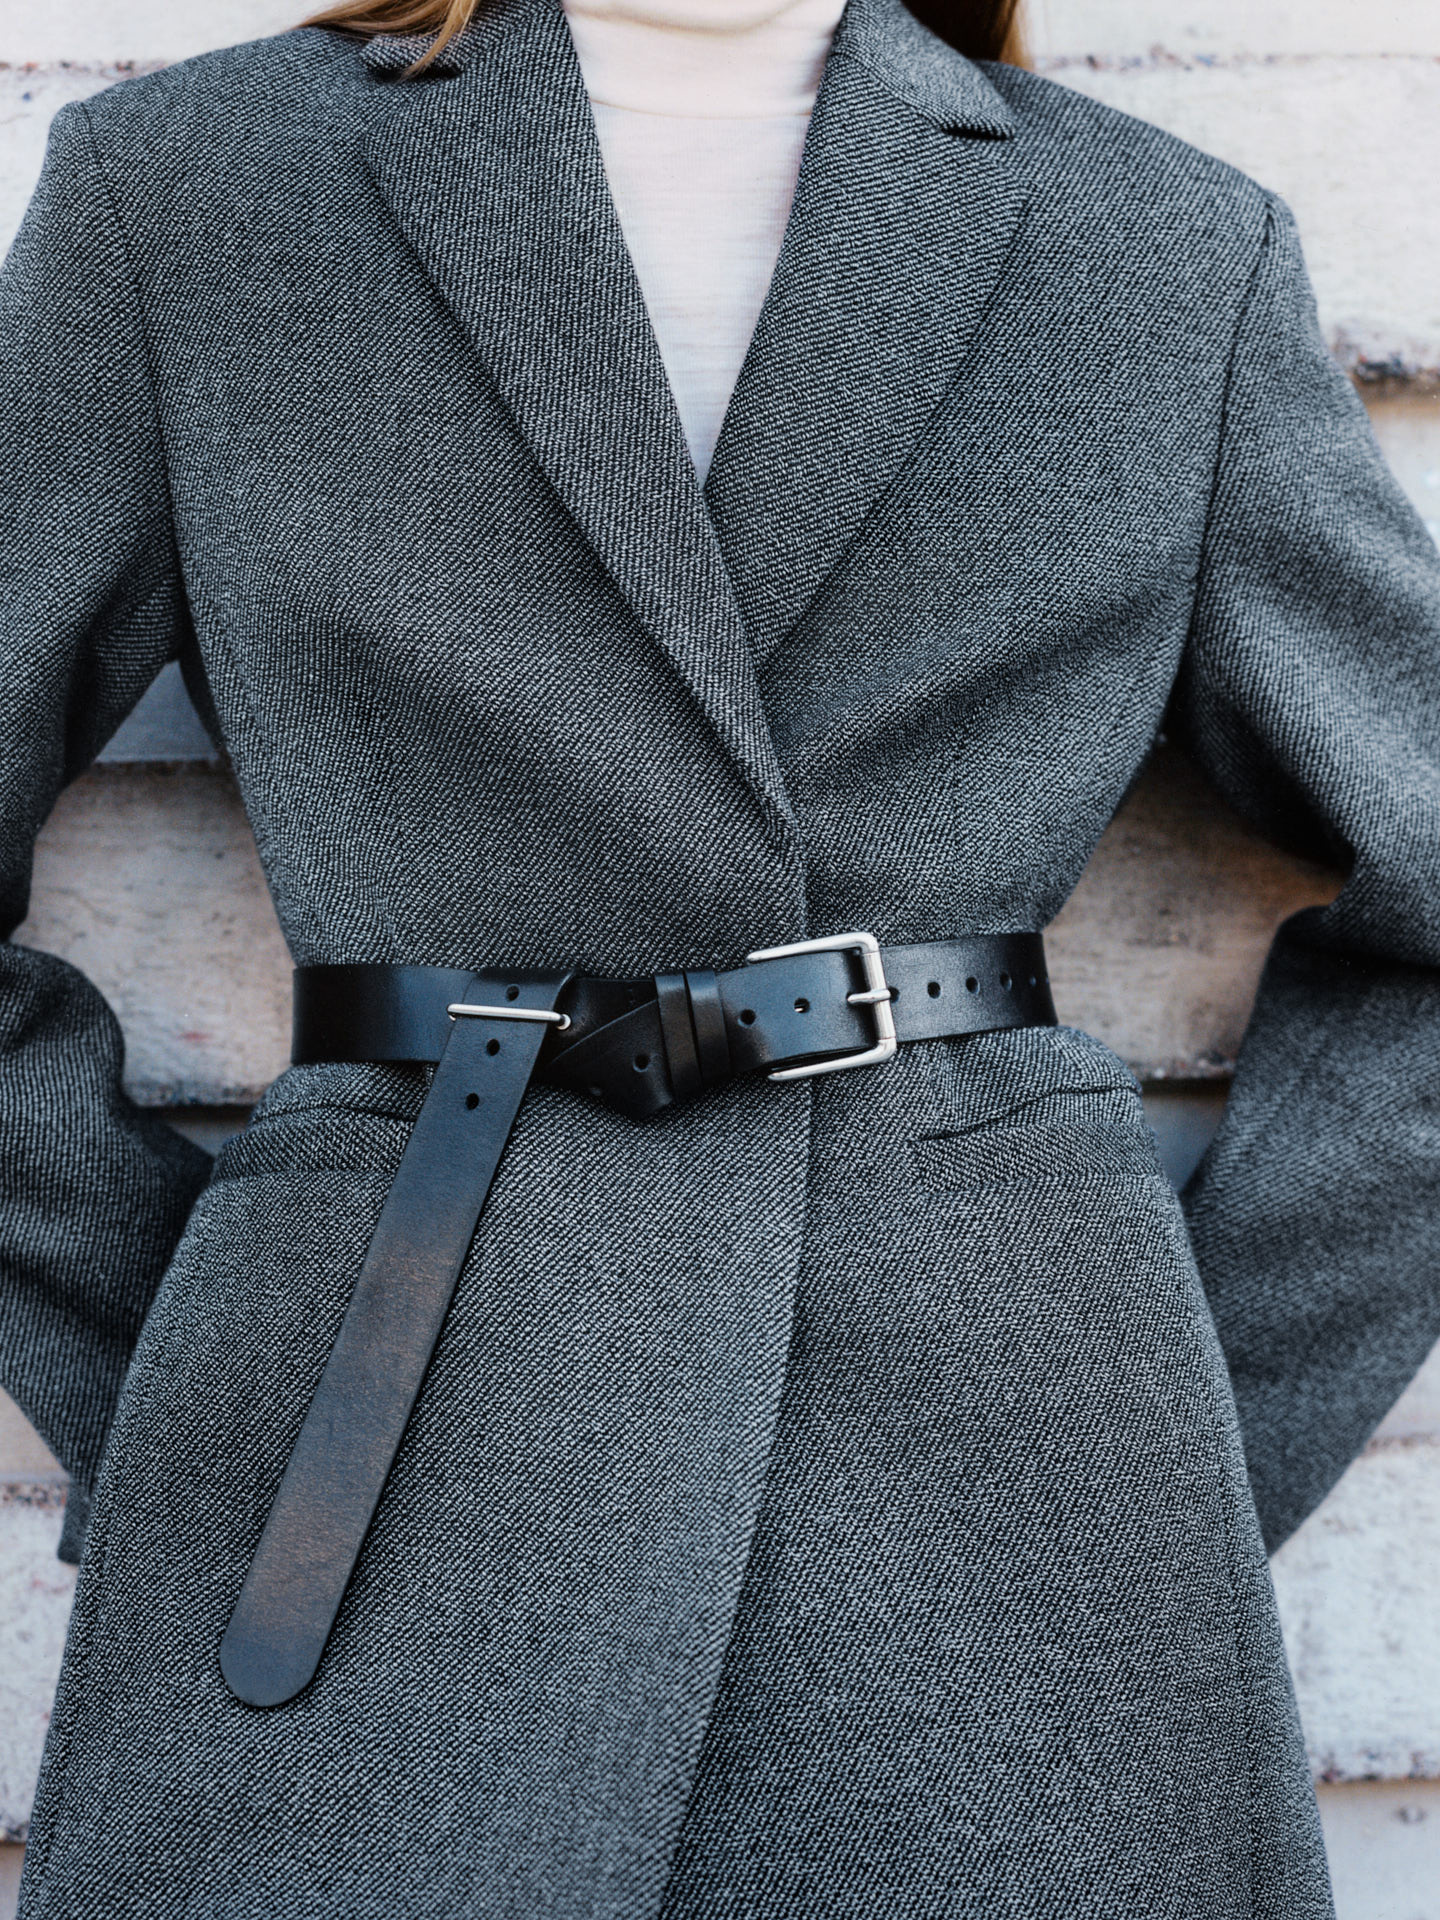 Female jacket and belt